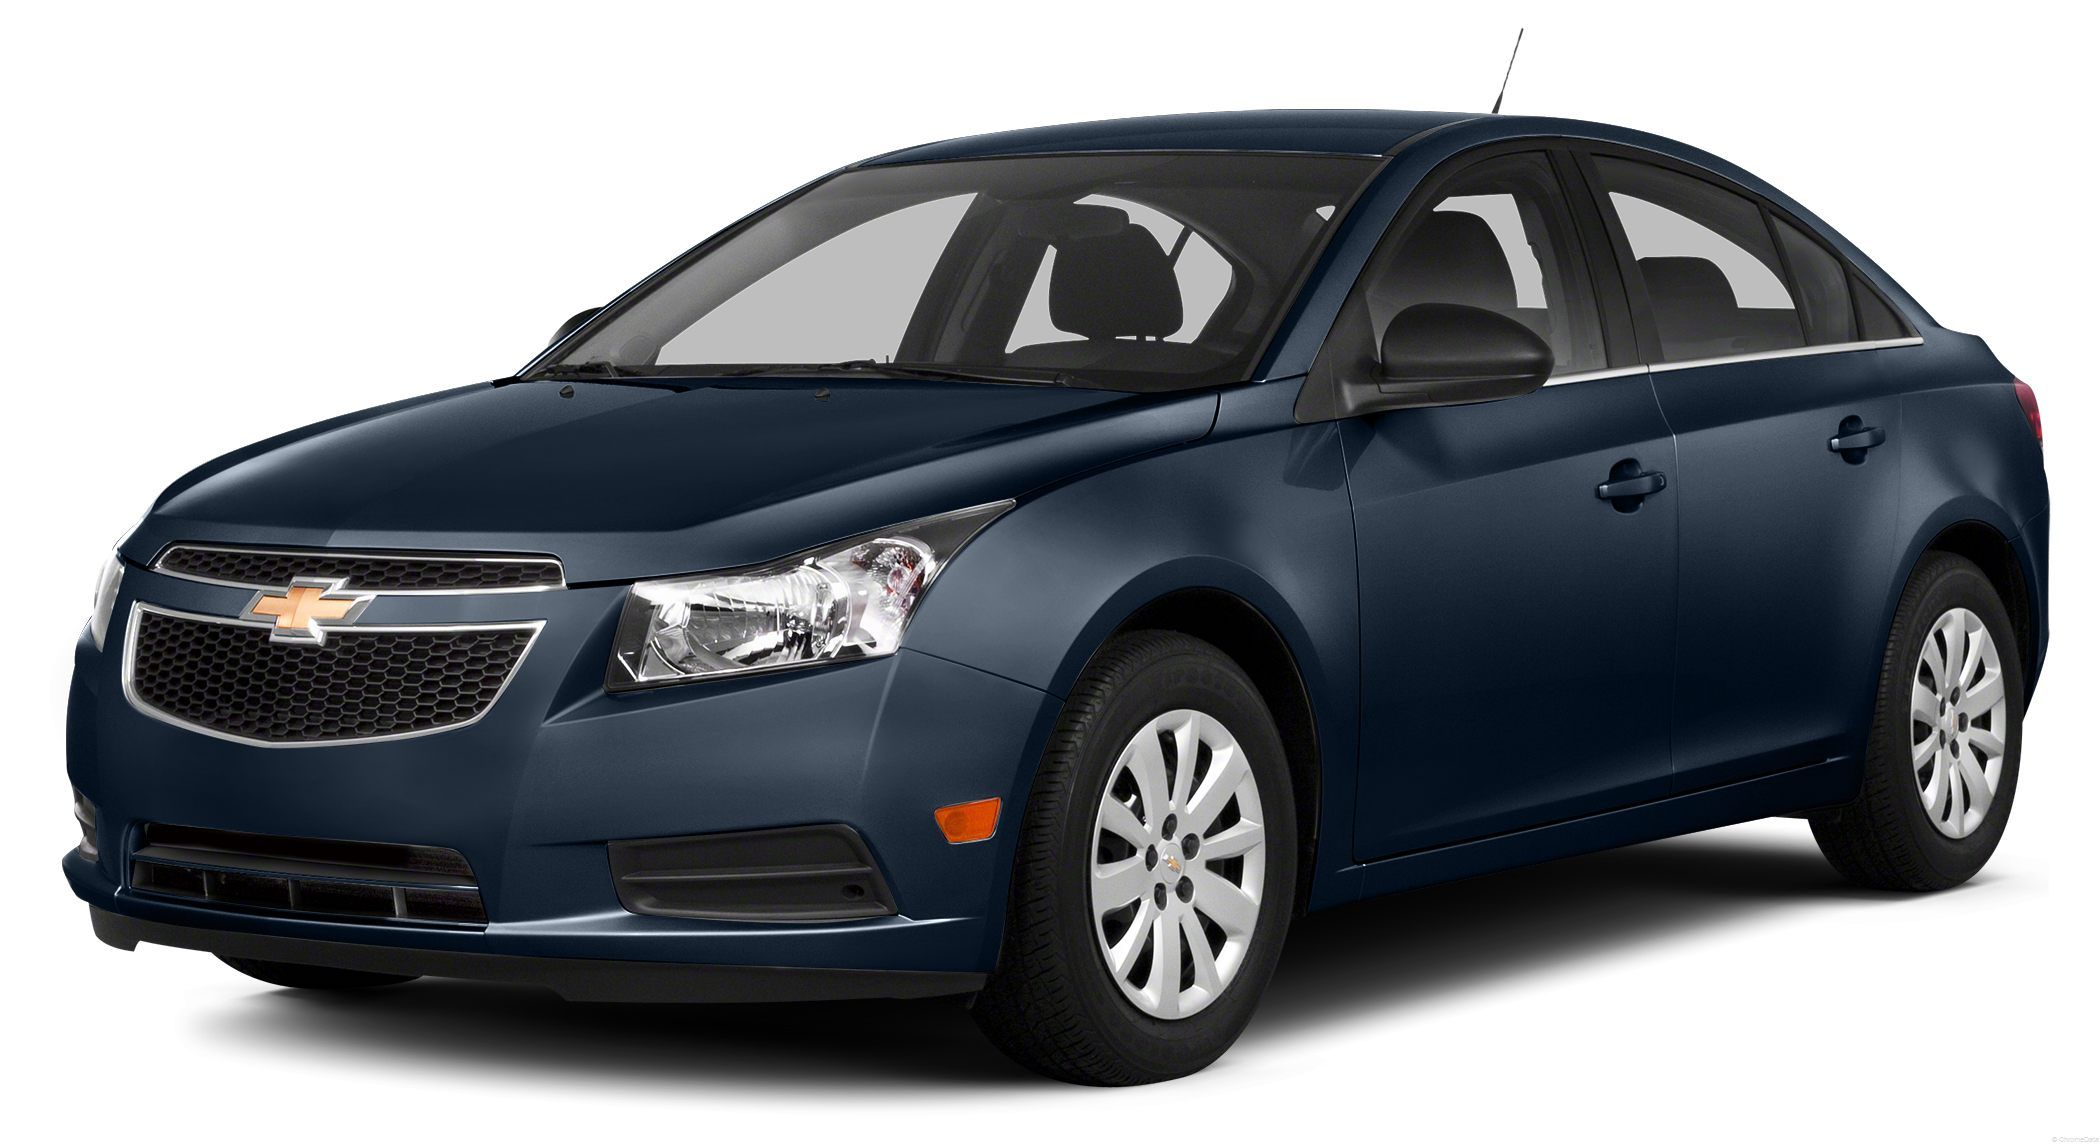 Chevrolet optra 2004 2008 service repair manual for the owner chevrolet optra 2004 2008 service repair manual for the owner with basic mechanical skills and for independant auto service professionals this fandeluxe Image collections